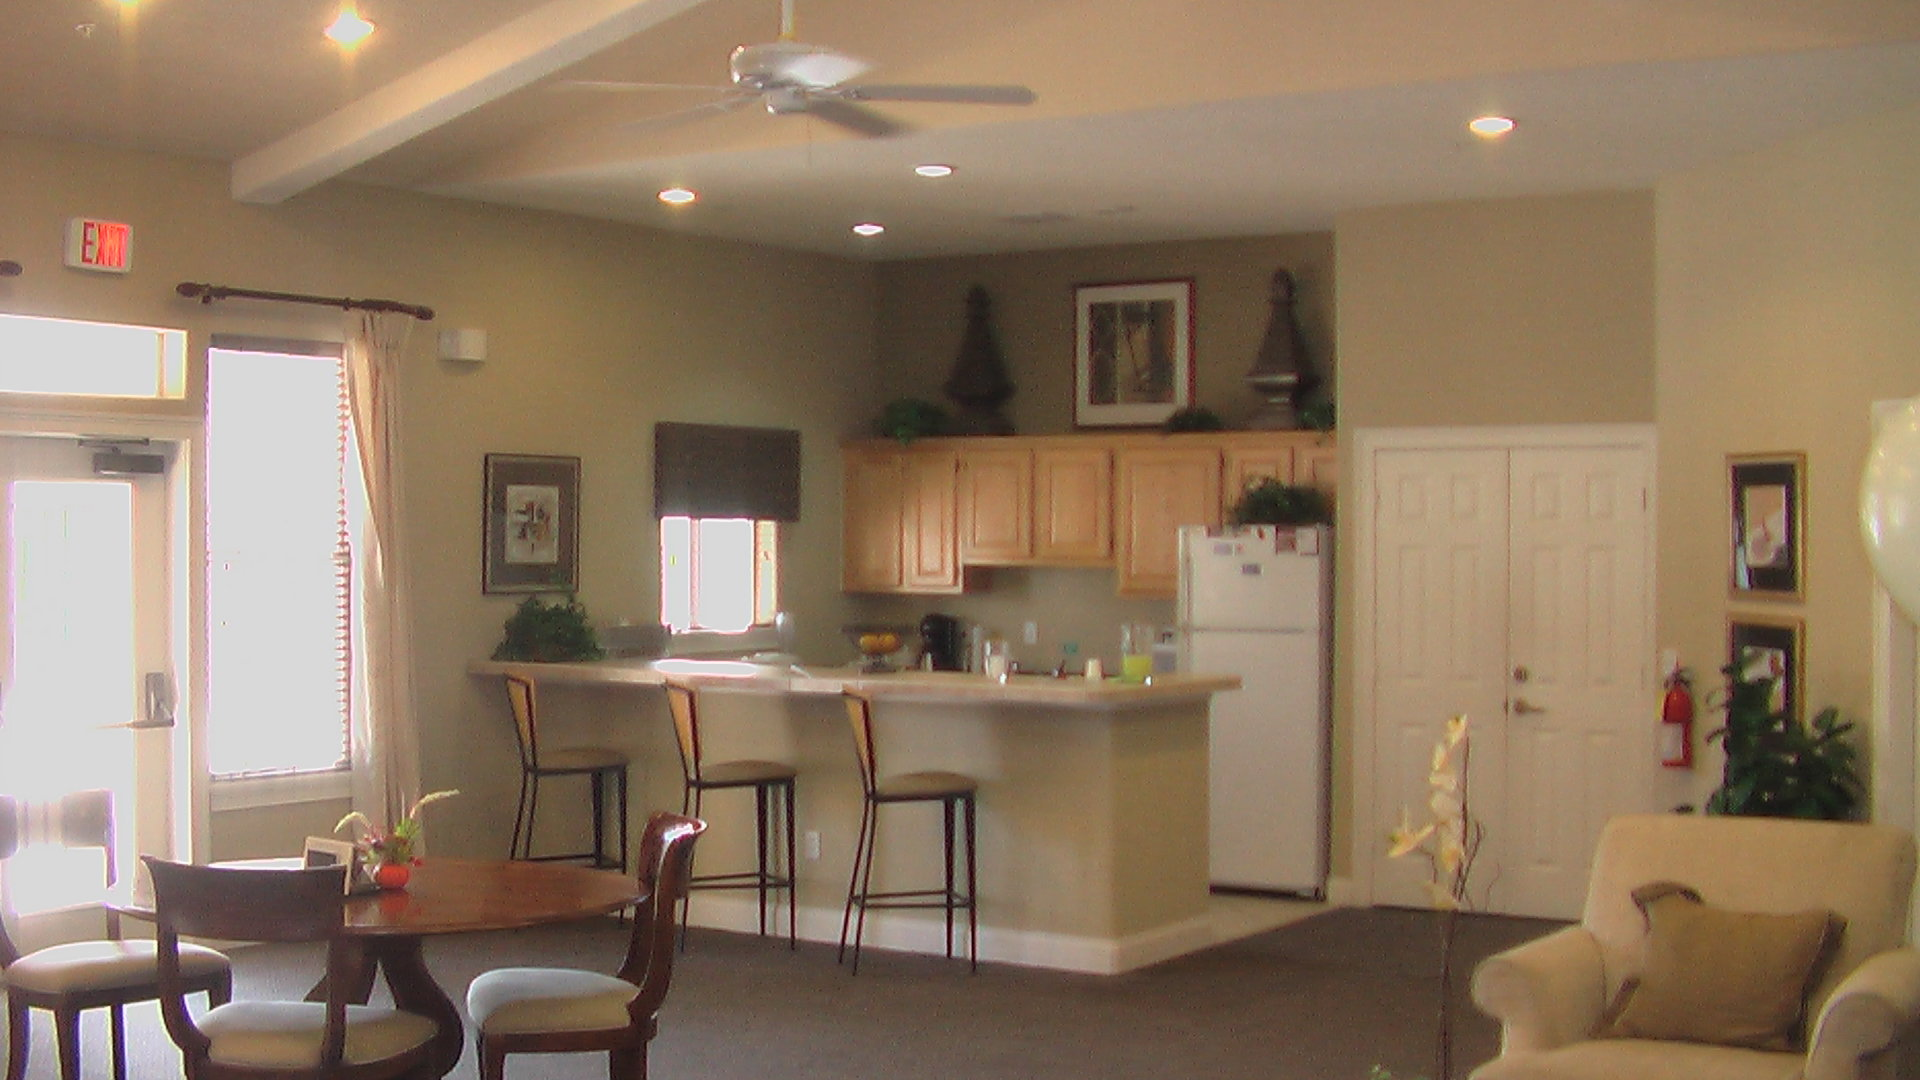 176 Apartments for Rent under $900 in Orlando, FL - Page 5 ...